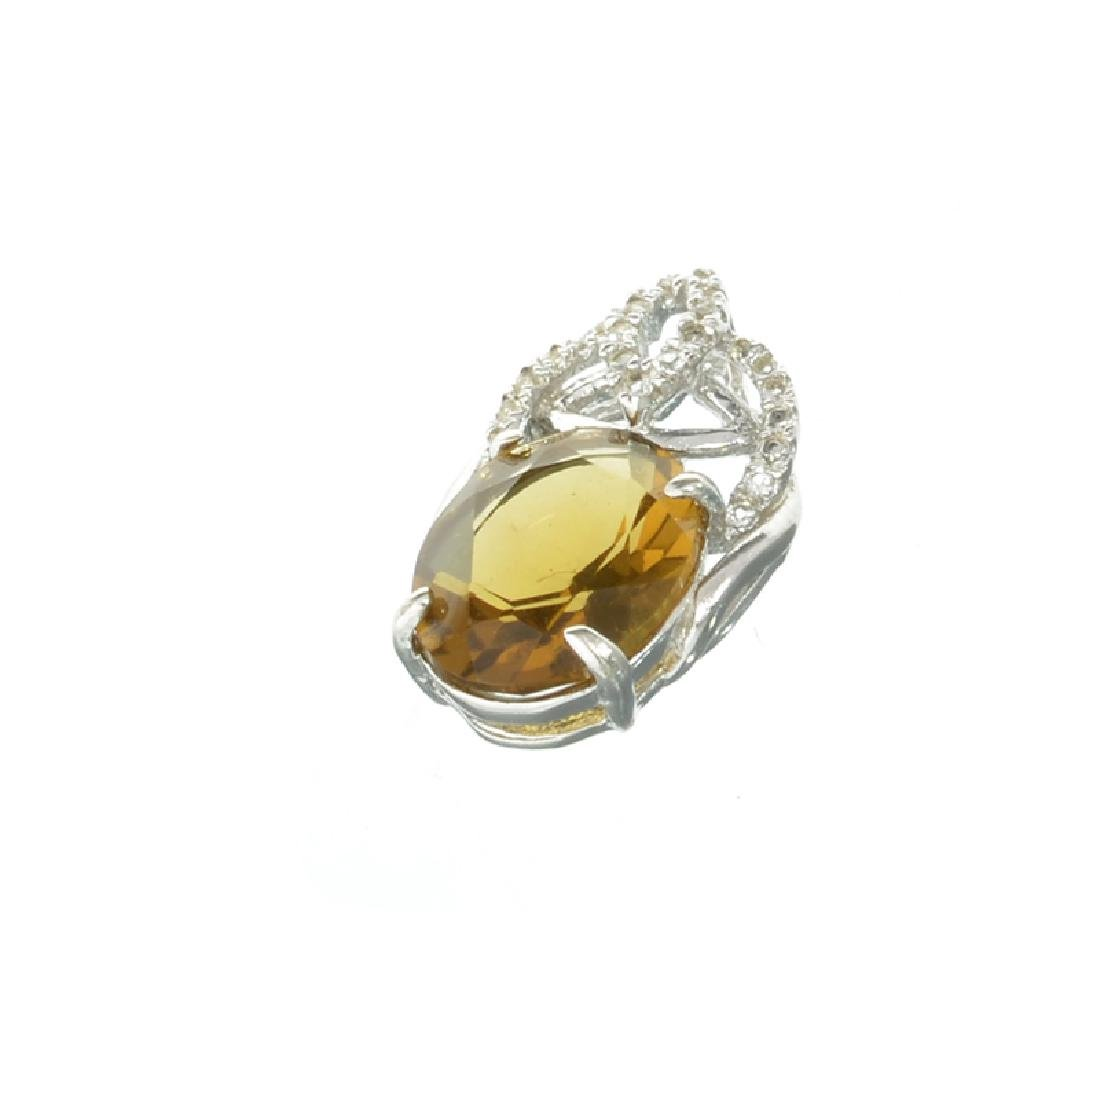 APP: 0.5k Fine Jewelry 2.00CT Oval Cut Citrine And